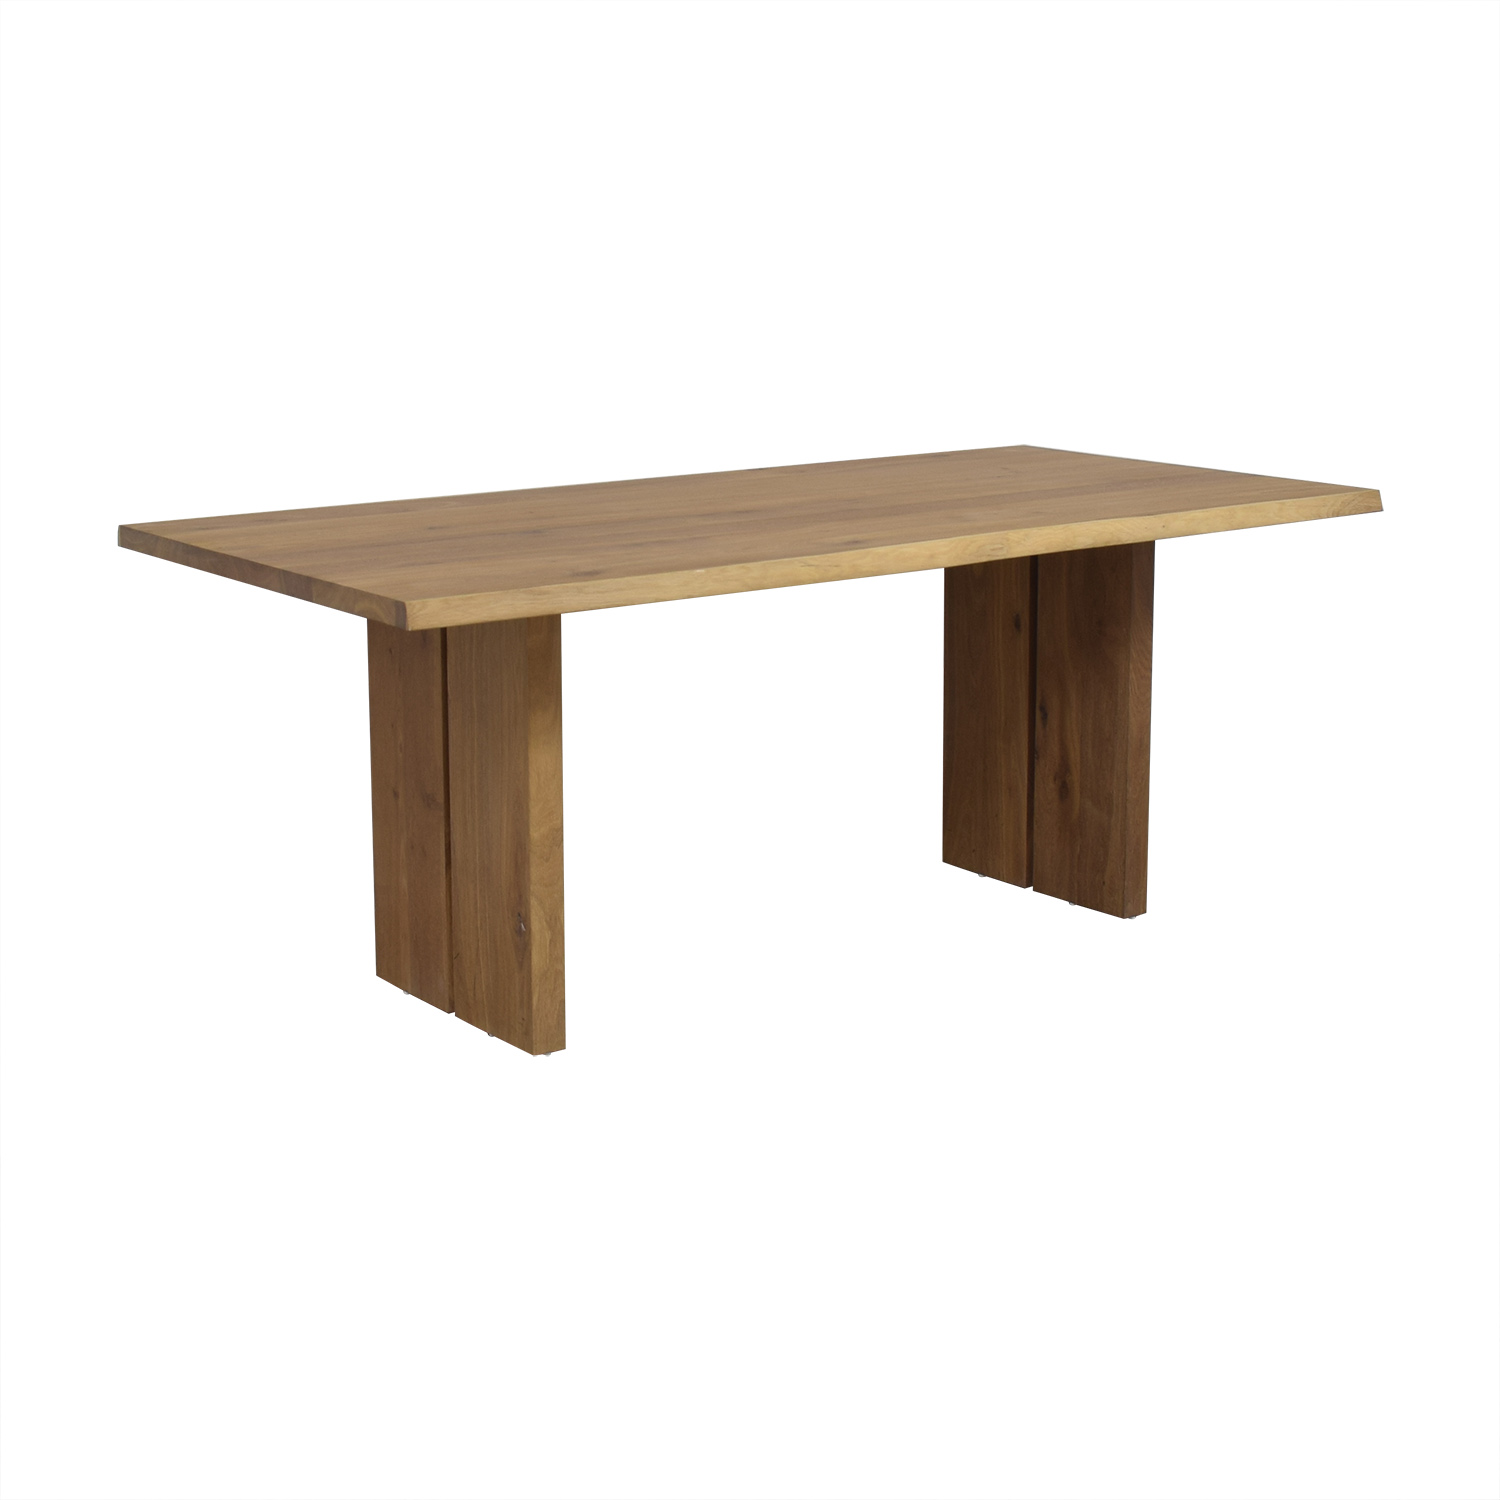 59 Off Crate Barrel Dakota Wood Dining Table Tables